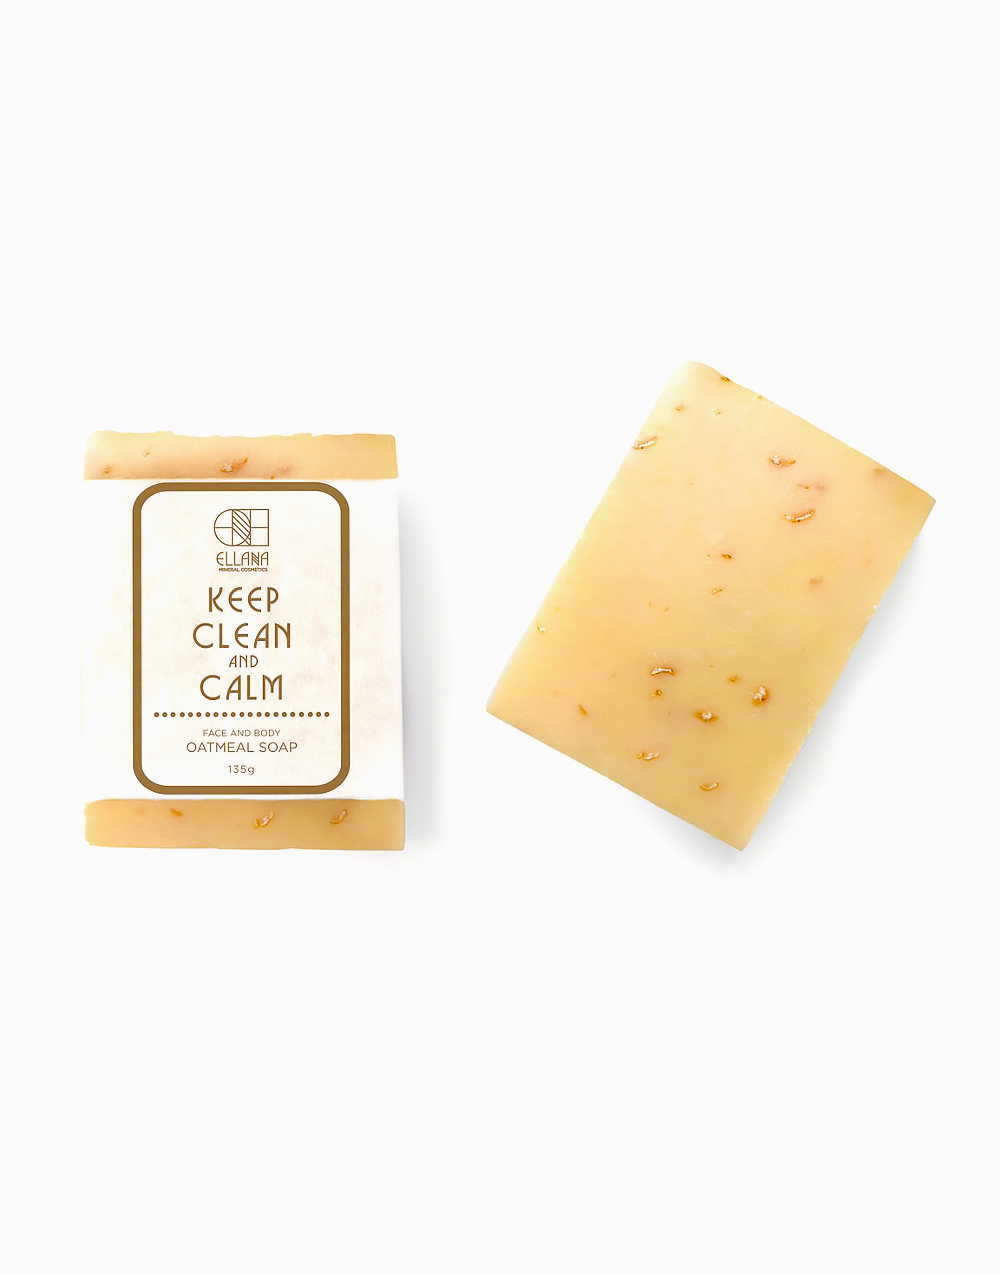 Keep Clean And Calm Oatmeal Soap by Ellana Mineral Cosmetics